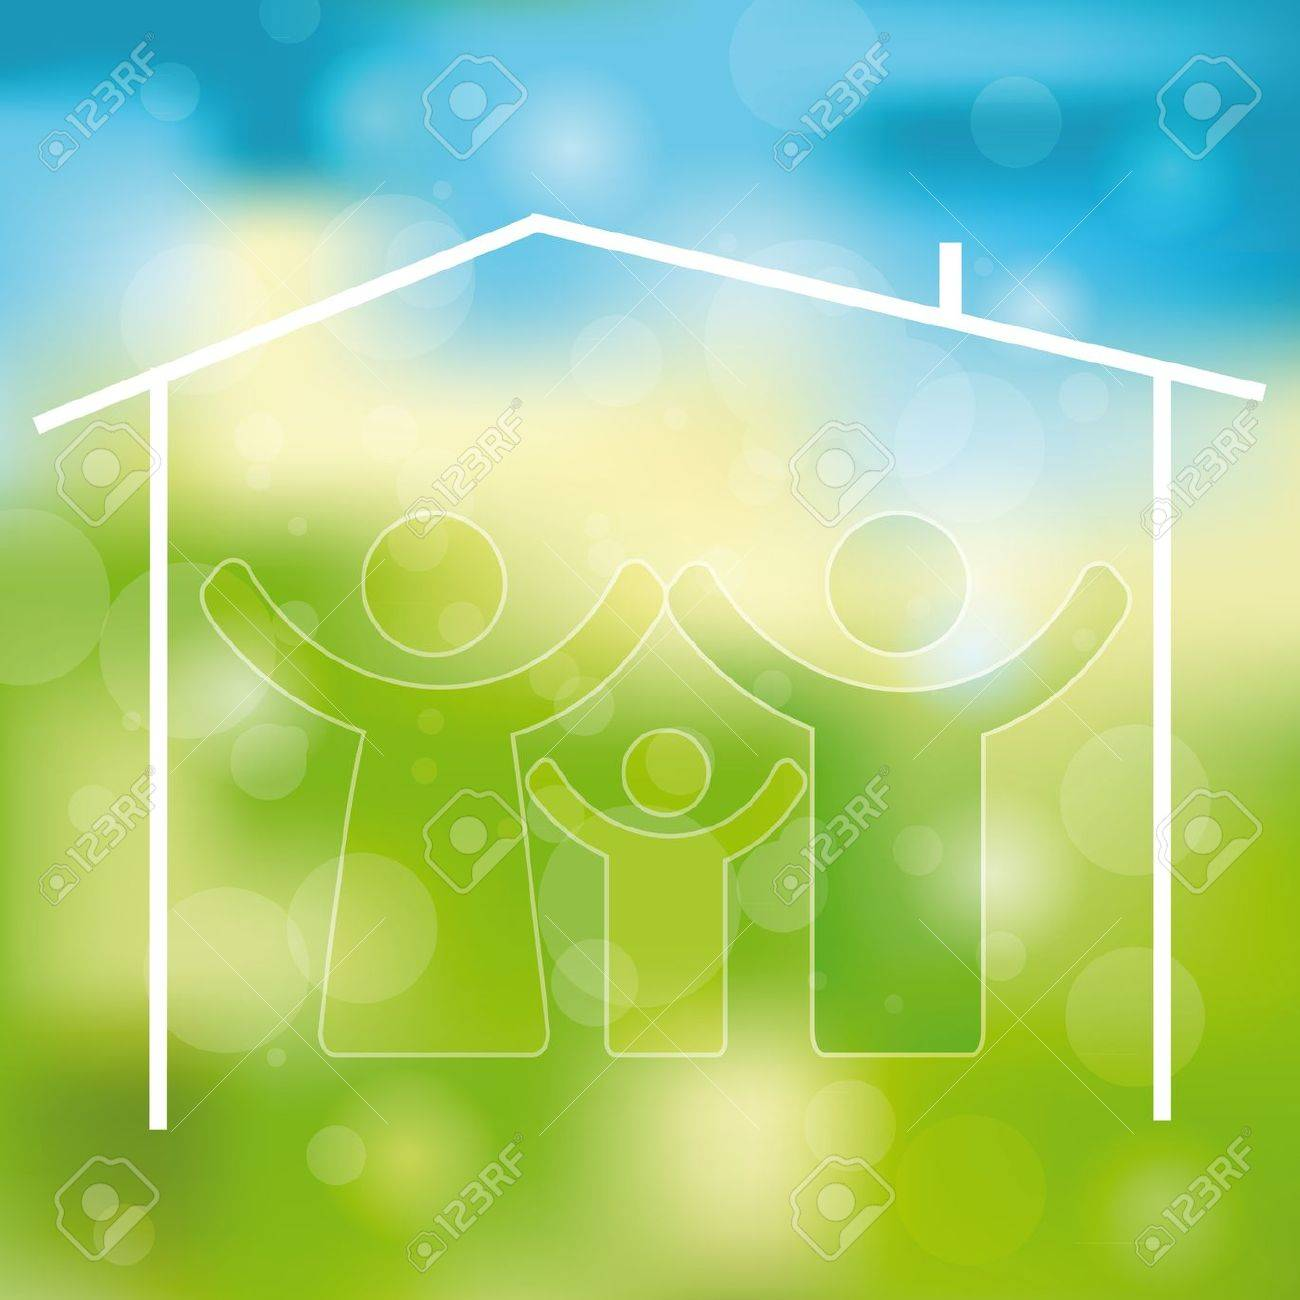 Green and blue light abstract background with family icon Stock Vector - 12293021